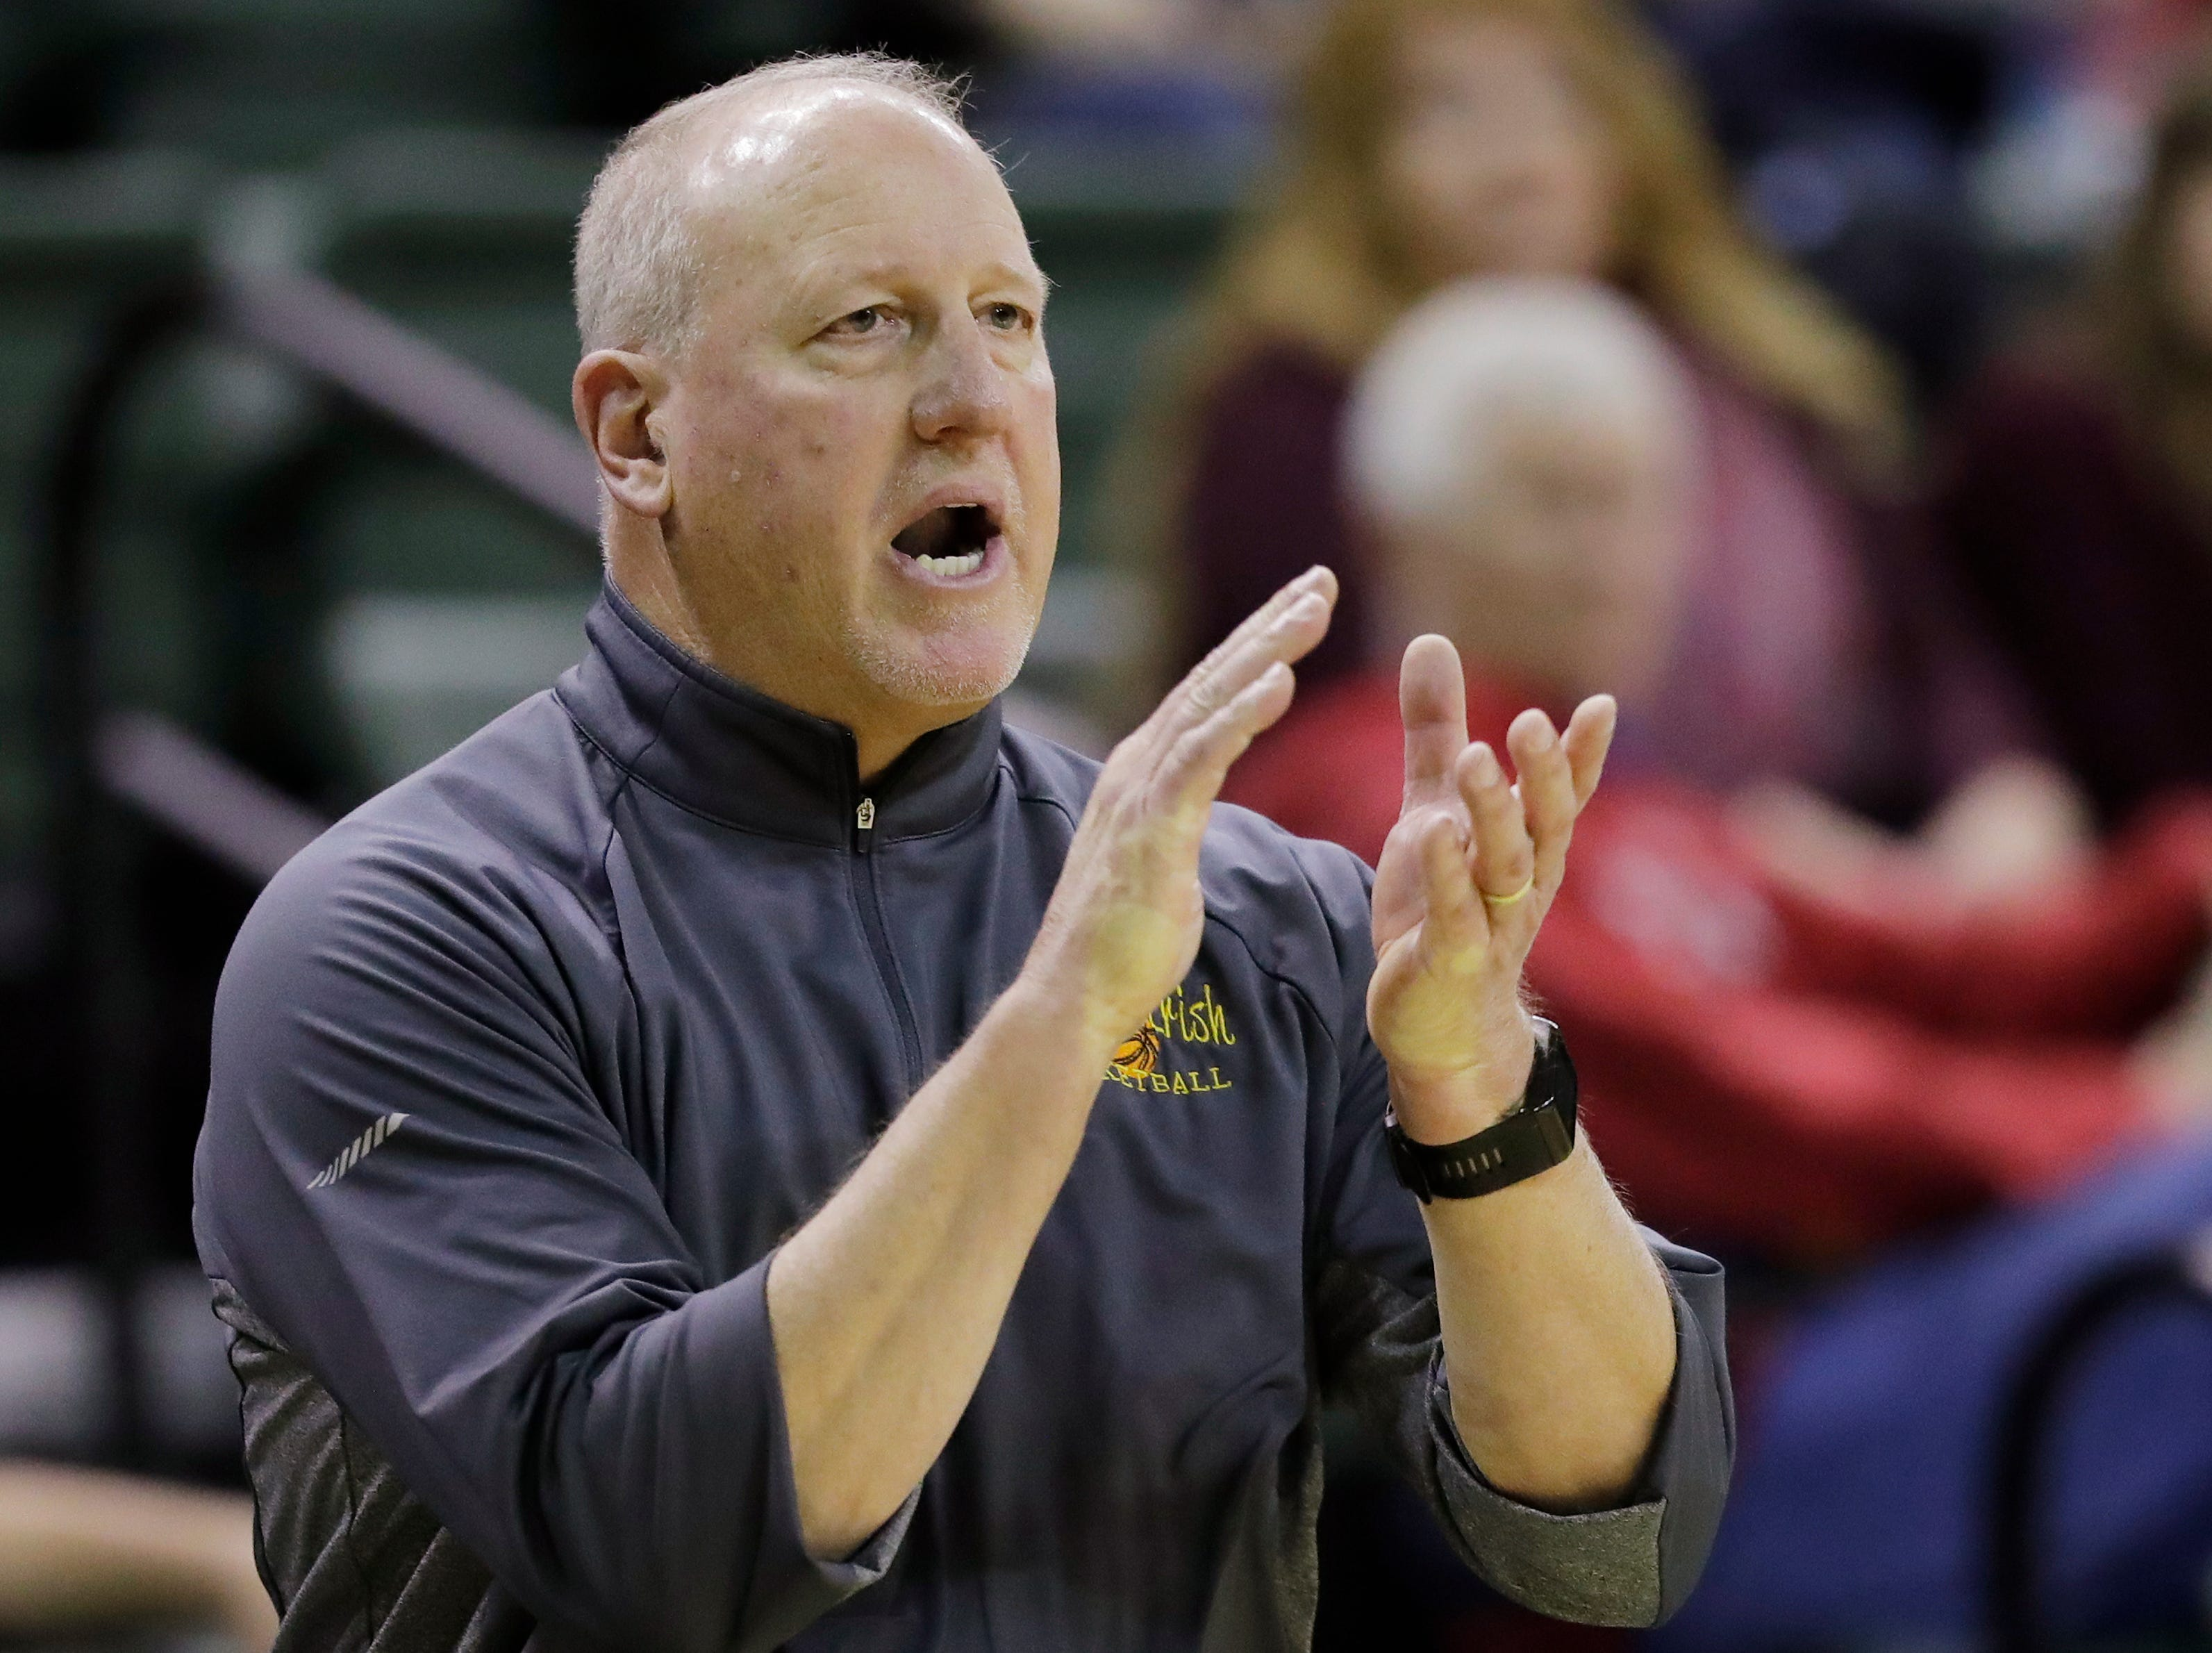 Freedom head coach John Miron applauds his players against New Holstein at the Sun Drop Shootout at the Kress Center on Thursday, December 27, 2018 in Green Bay, Wis.